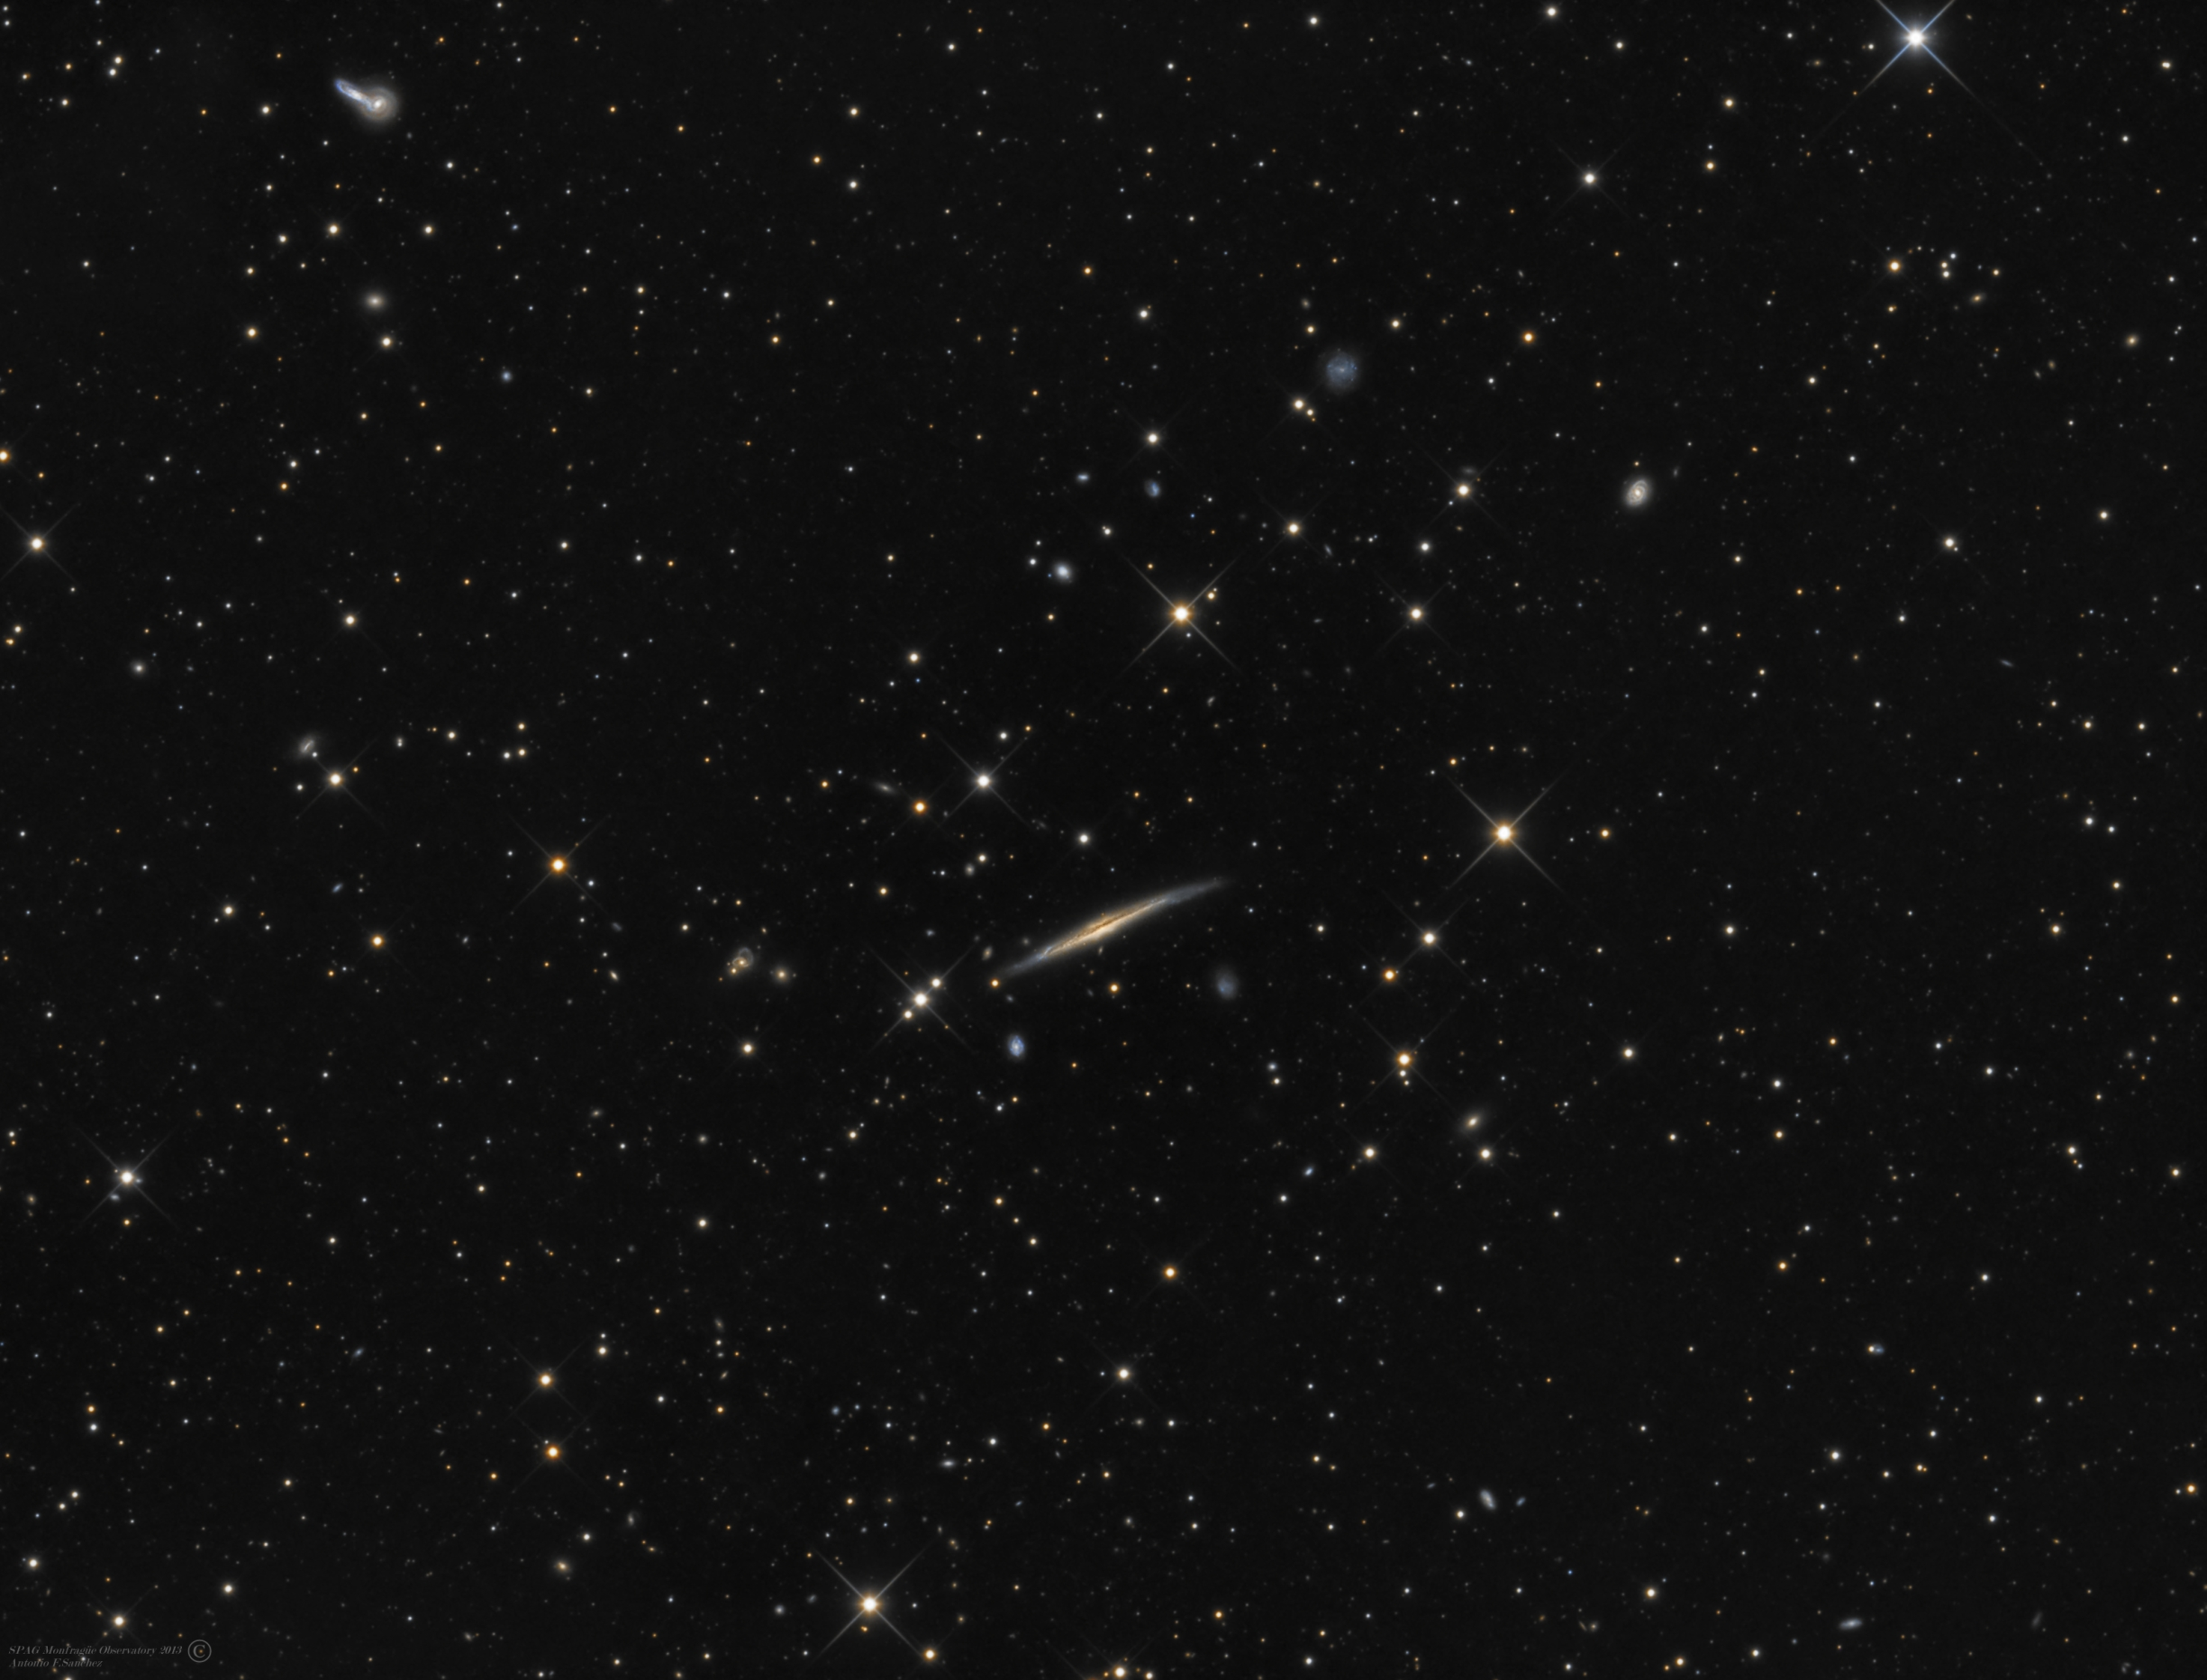 NGC 5529,5527,5544,5545 [Bootes].jpg - NGC 5529 (PAH galaxy), NGC 5527,NGC5544,NGC5545 (Bootes)* April-May 2013 * ASA N12 astrograph (f/3.6, 1078mm) * ASA DDM85 mount * FLI ML8300 at -25ºC * Optec LRGB filter set * L:420m R:140m G:130m B:150m * Unguided *